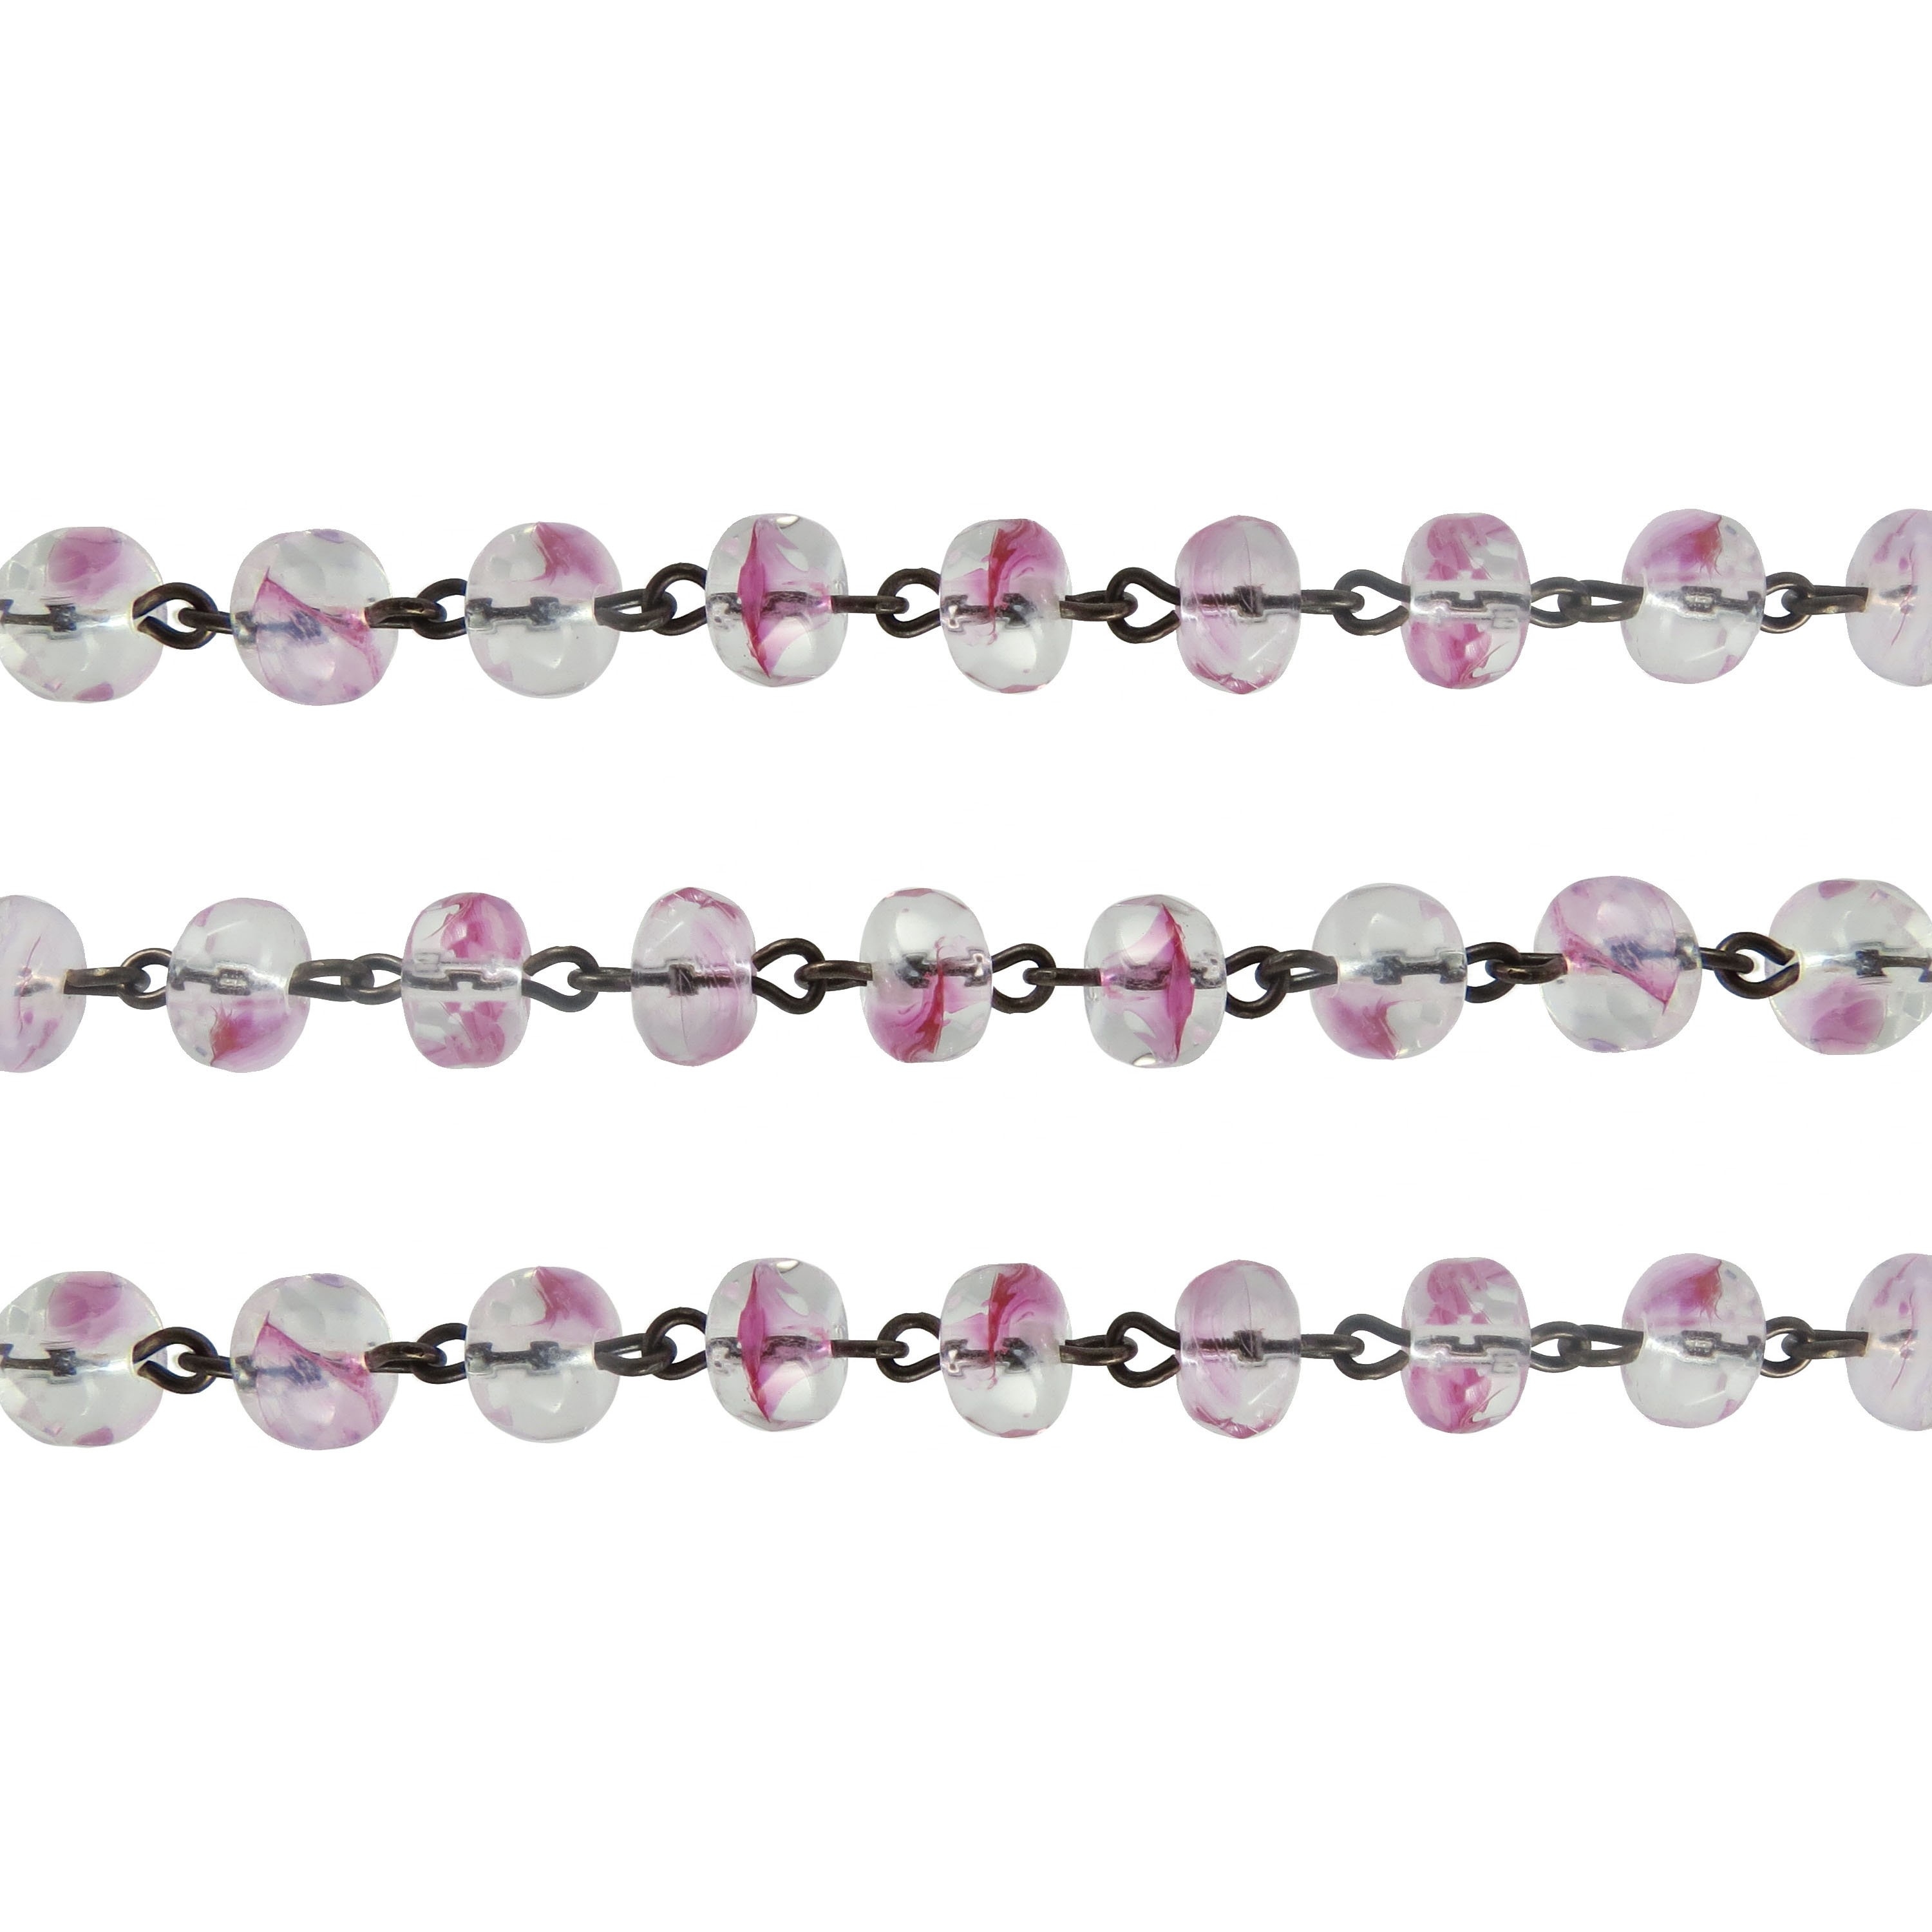 Czech Linked Rosary Chain, 7mm, Striped Pink Faceted Gemstone Rondel Beads  , Brass Link (Sold by the Meter)